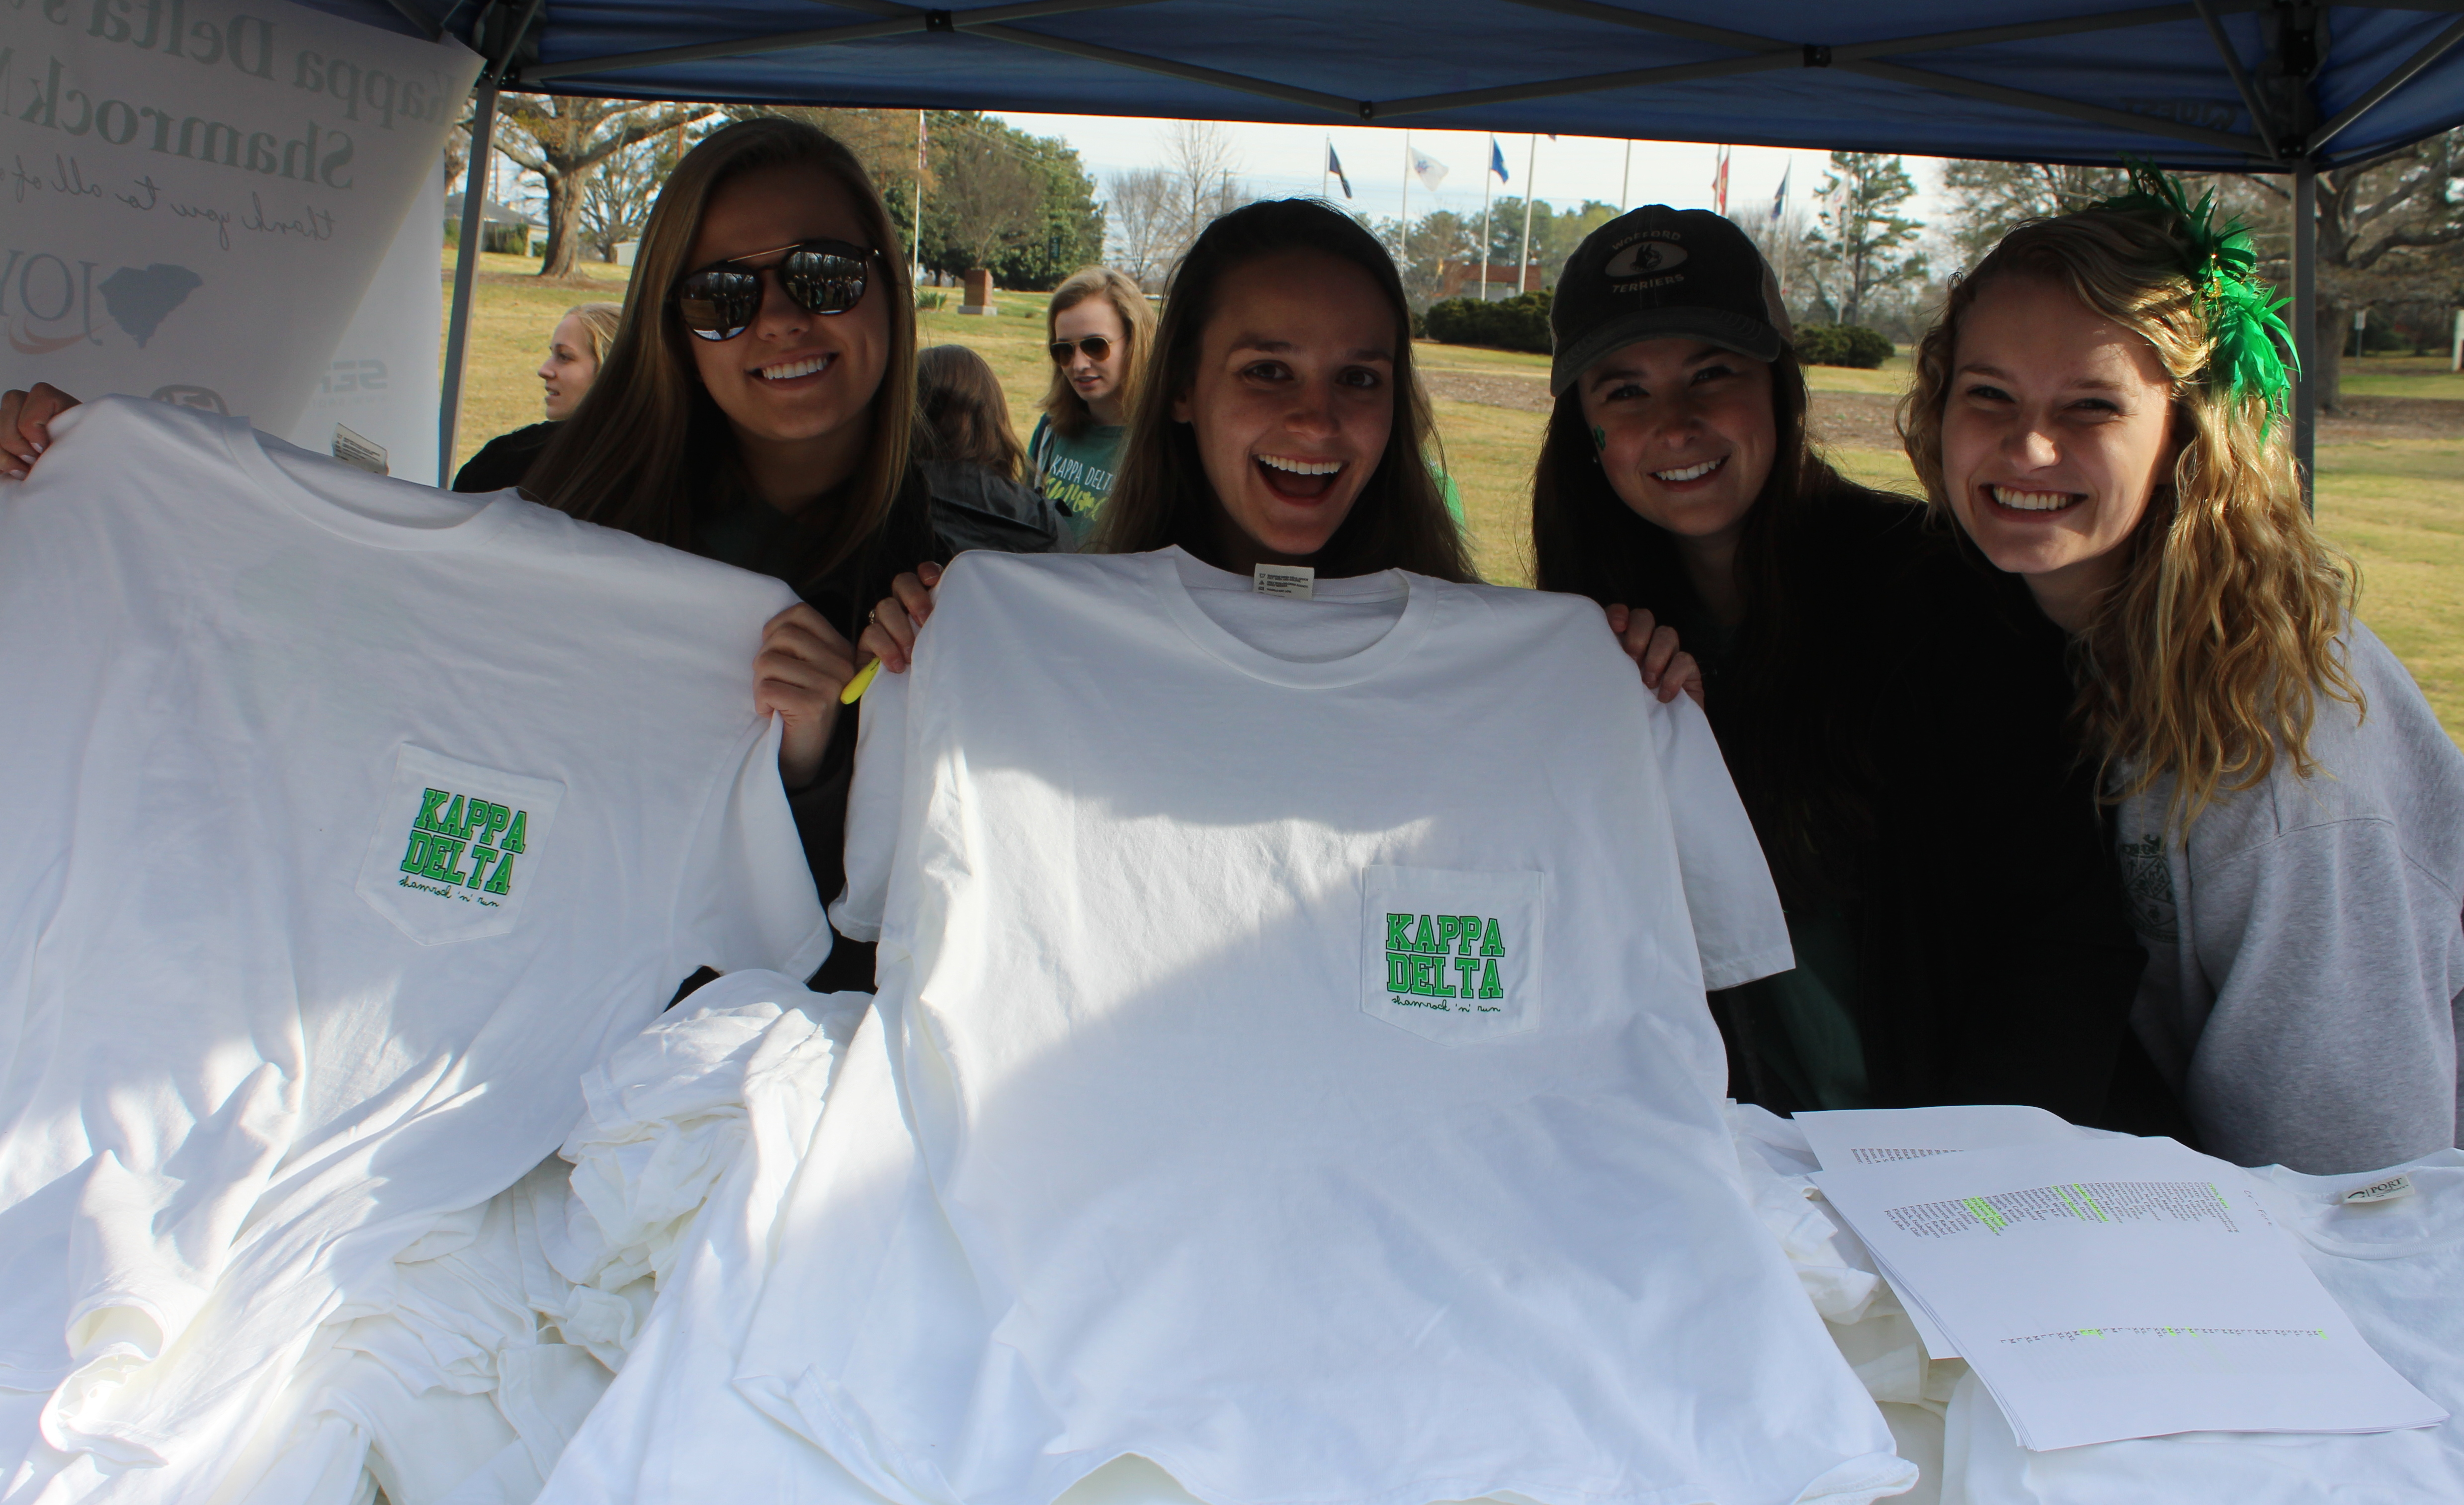 Kappa Delta's 8th Annual Shamrock N Run